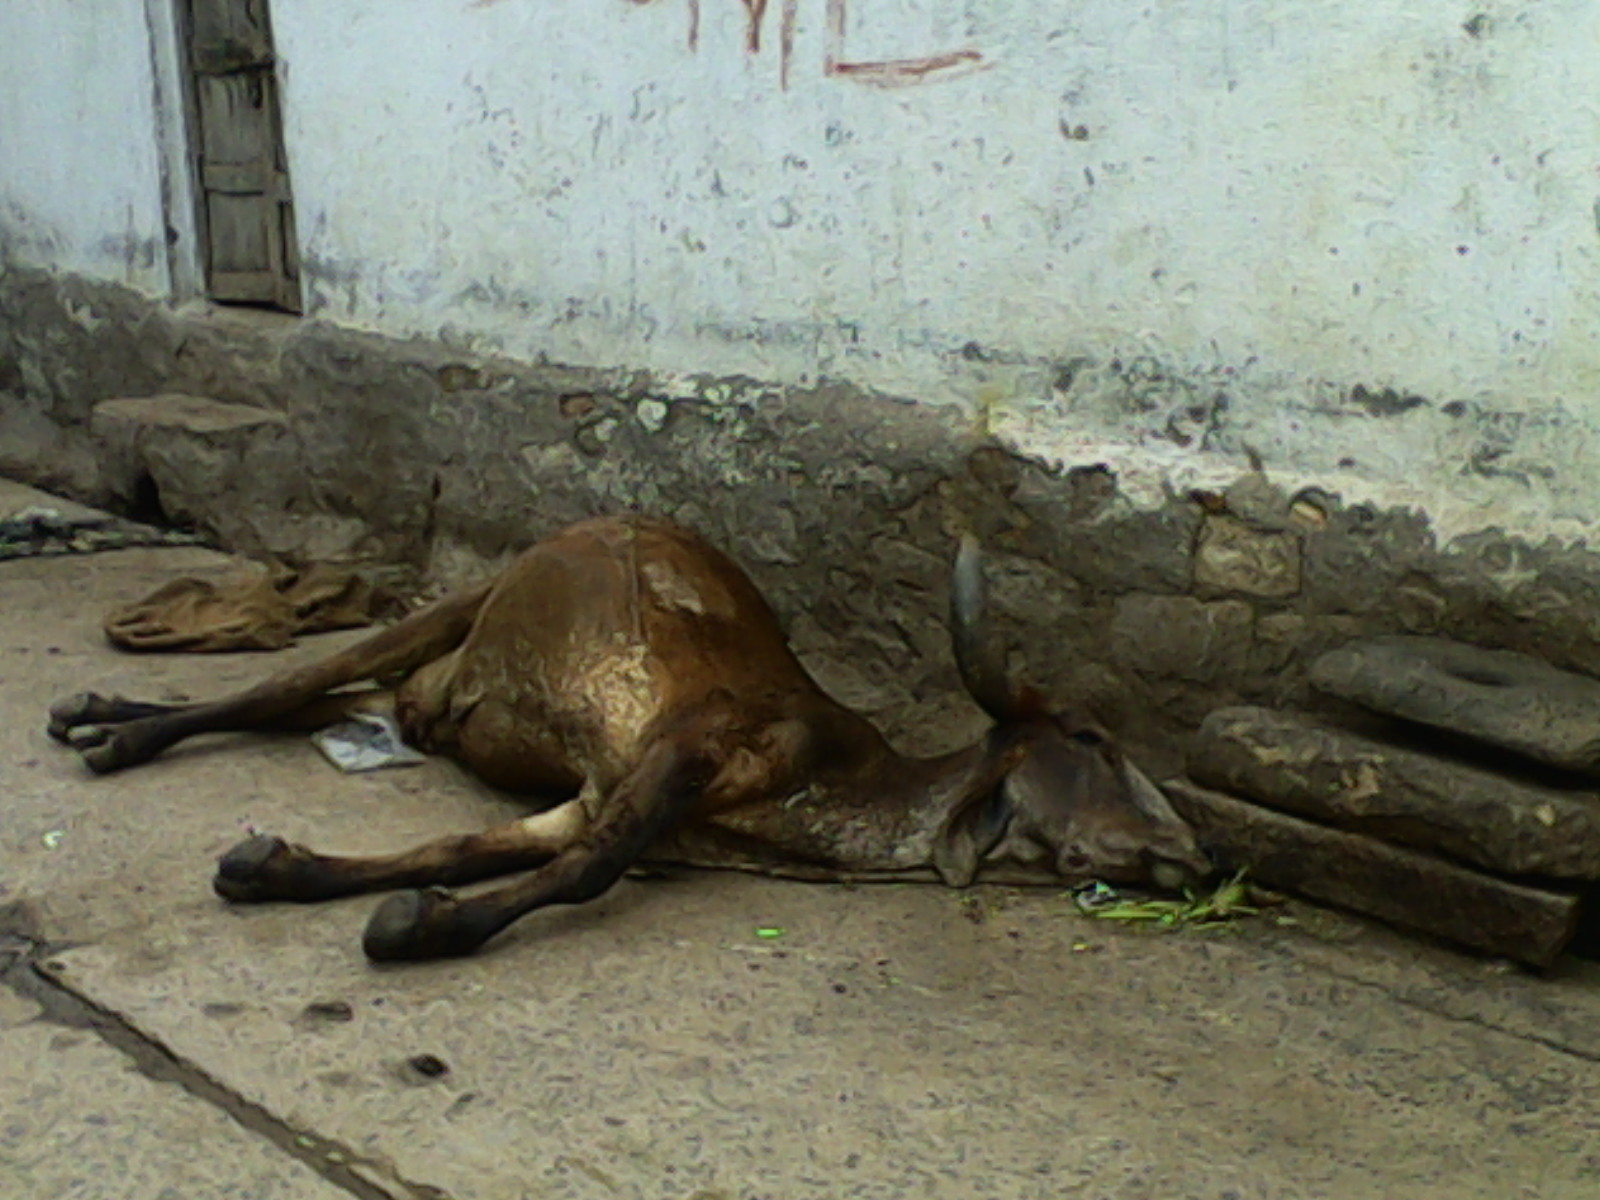 A cow carcass rots in Surendranagar town as a result of the boycott